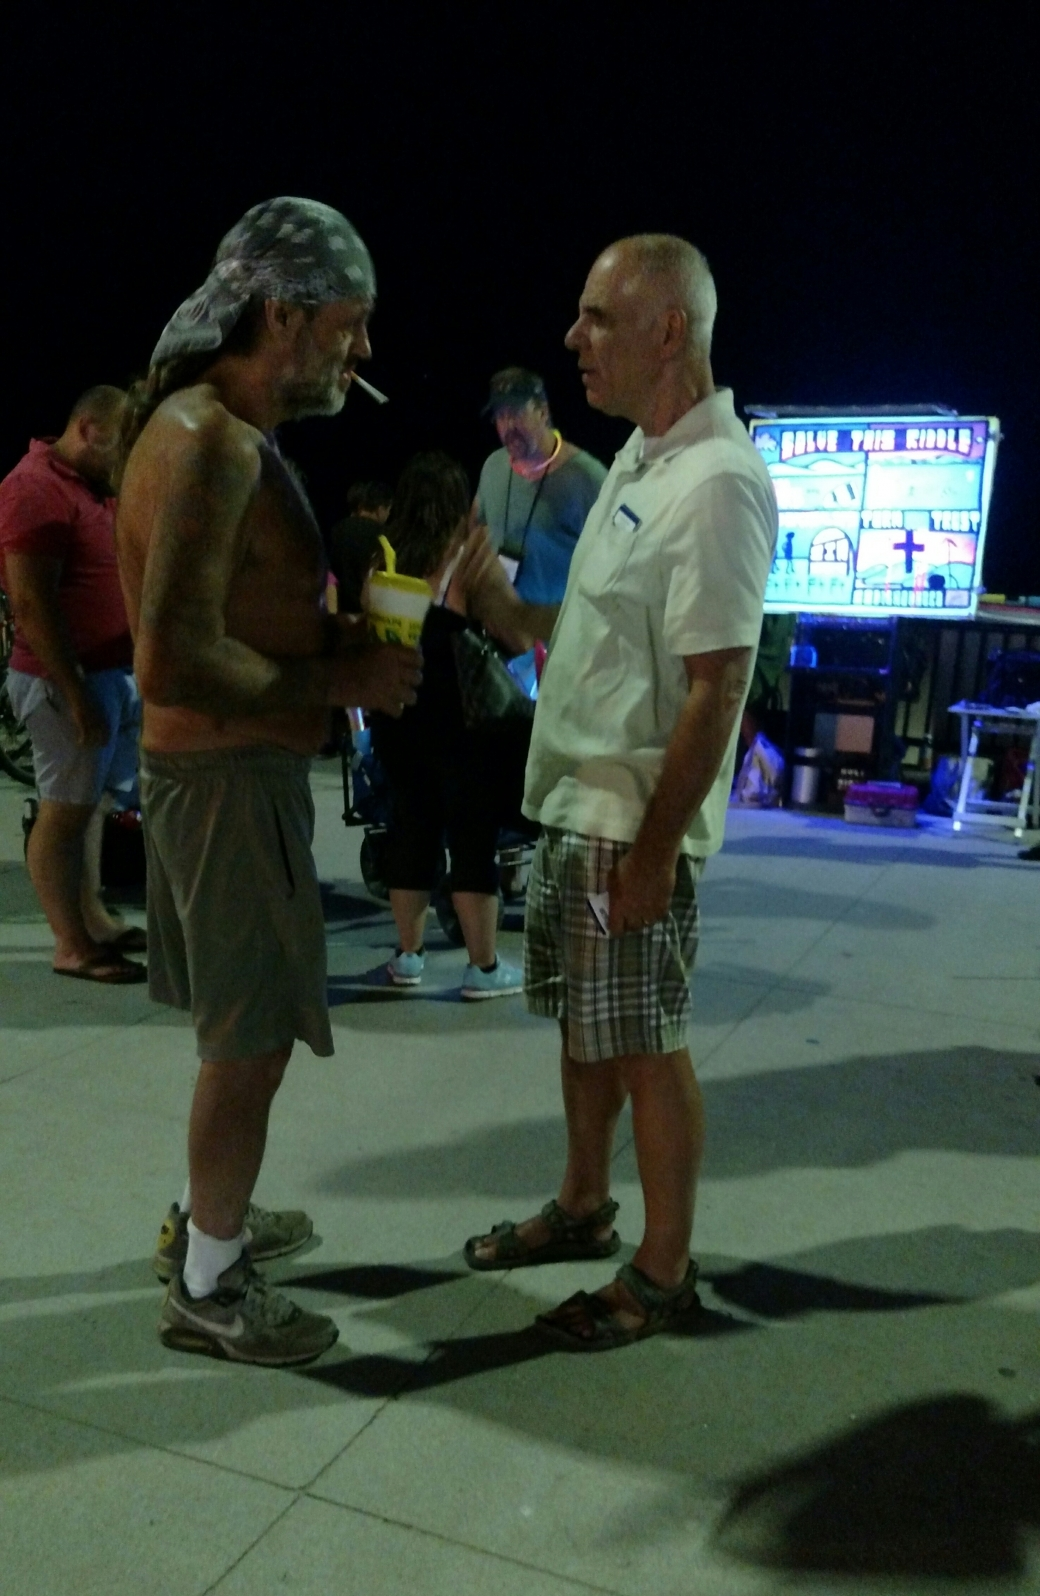 Eric (right) patiently answered the questions of this man.